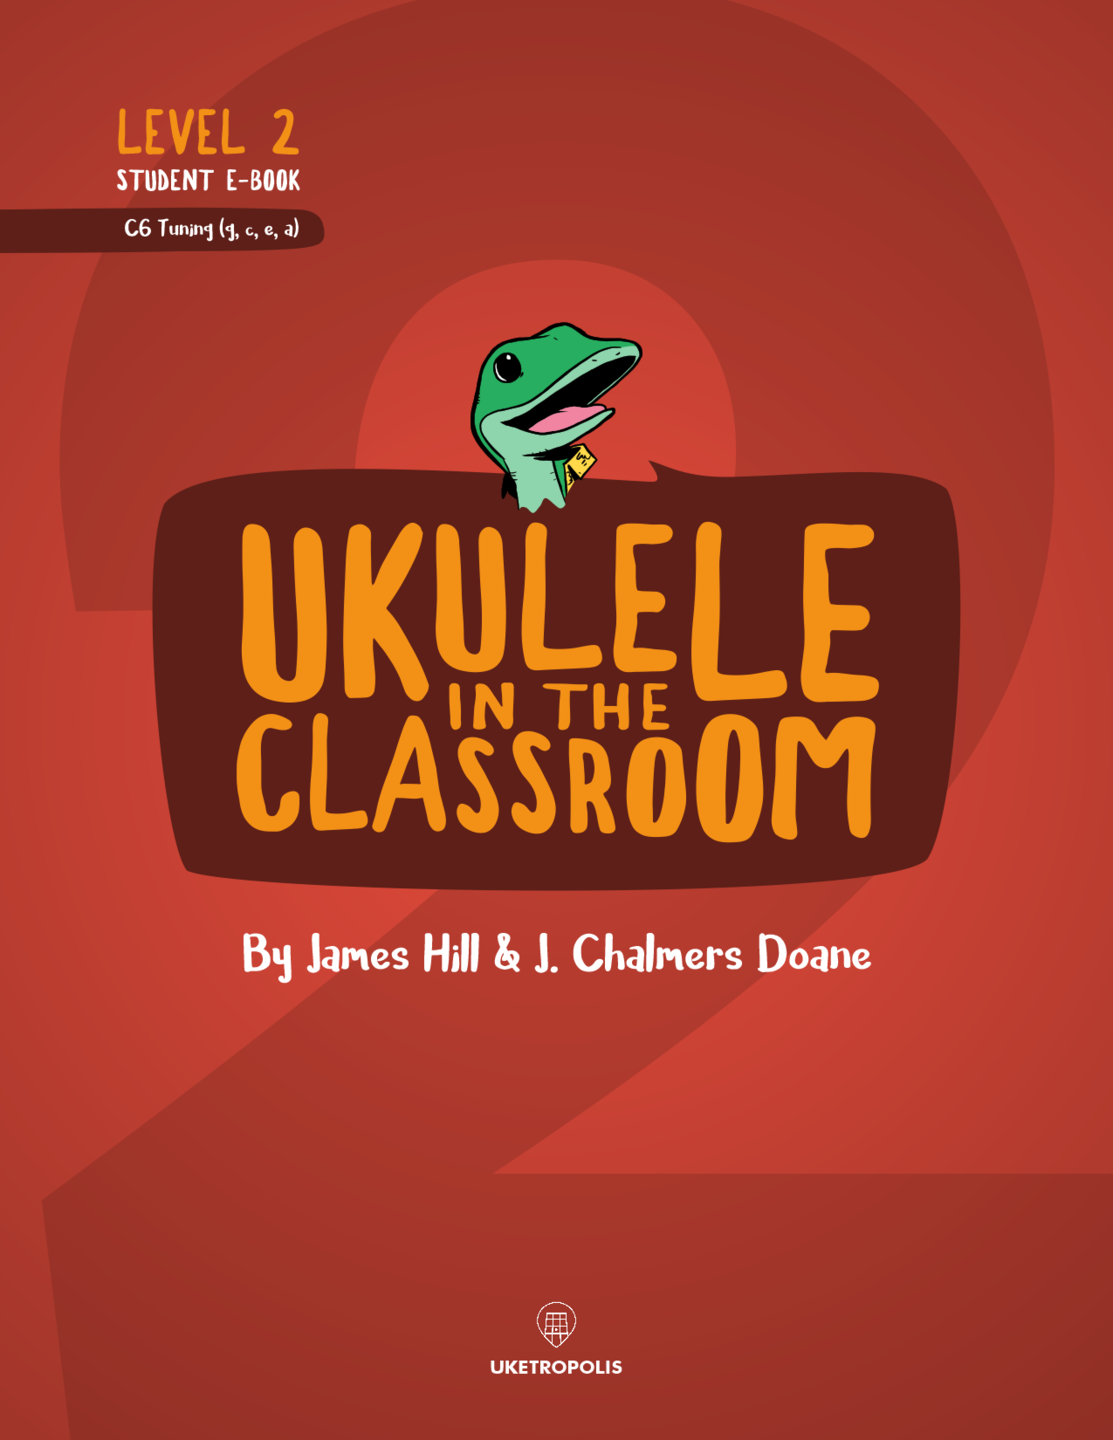 Ukulele in the Classroom Level 2